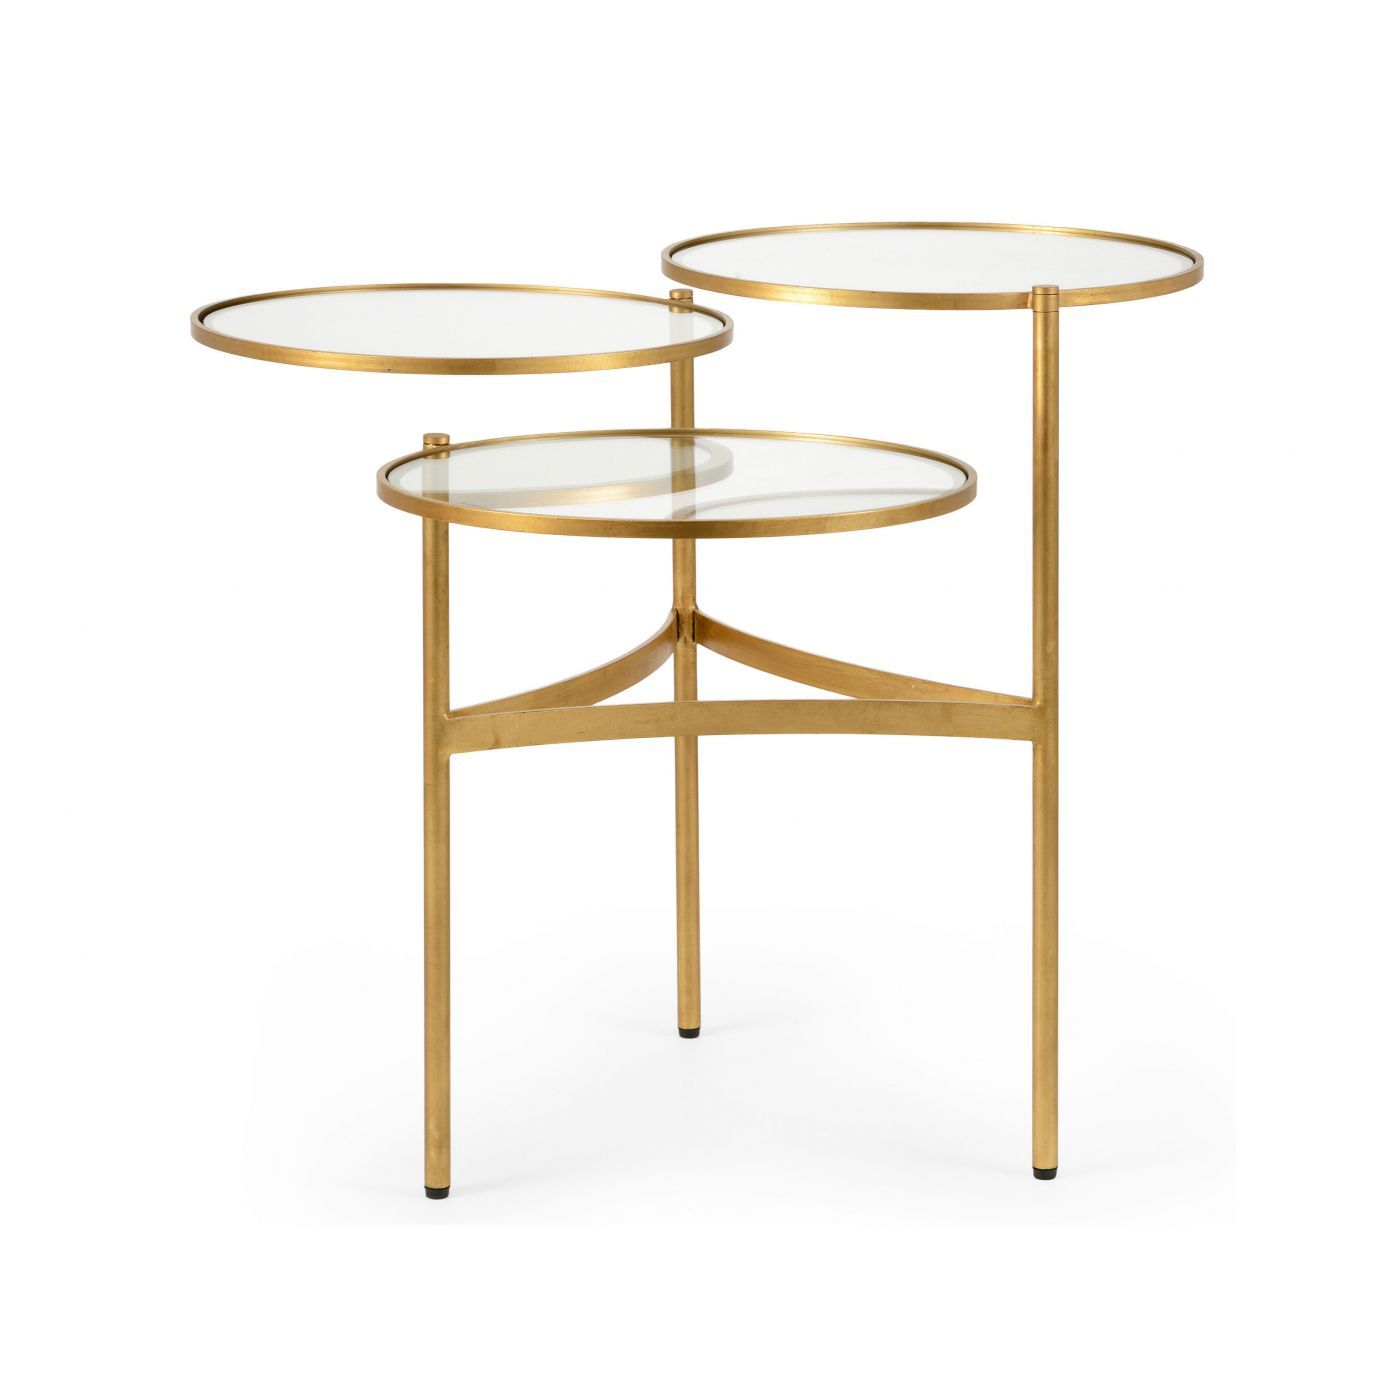 Three Tiered Coffee Table Made Of Glass And Steel With A Sophisticated Gold Finish Each Tier Is Can Be Adju 3 Tier Coffee Table Coffee Table Gold Coffee Table